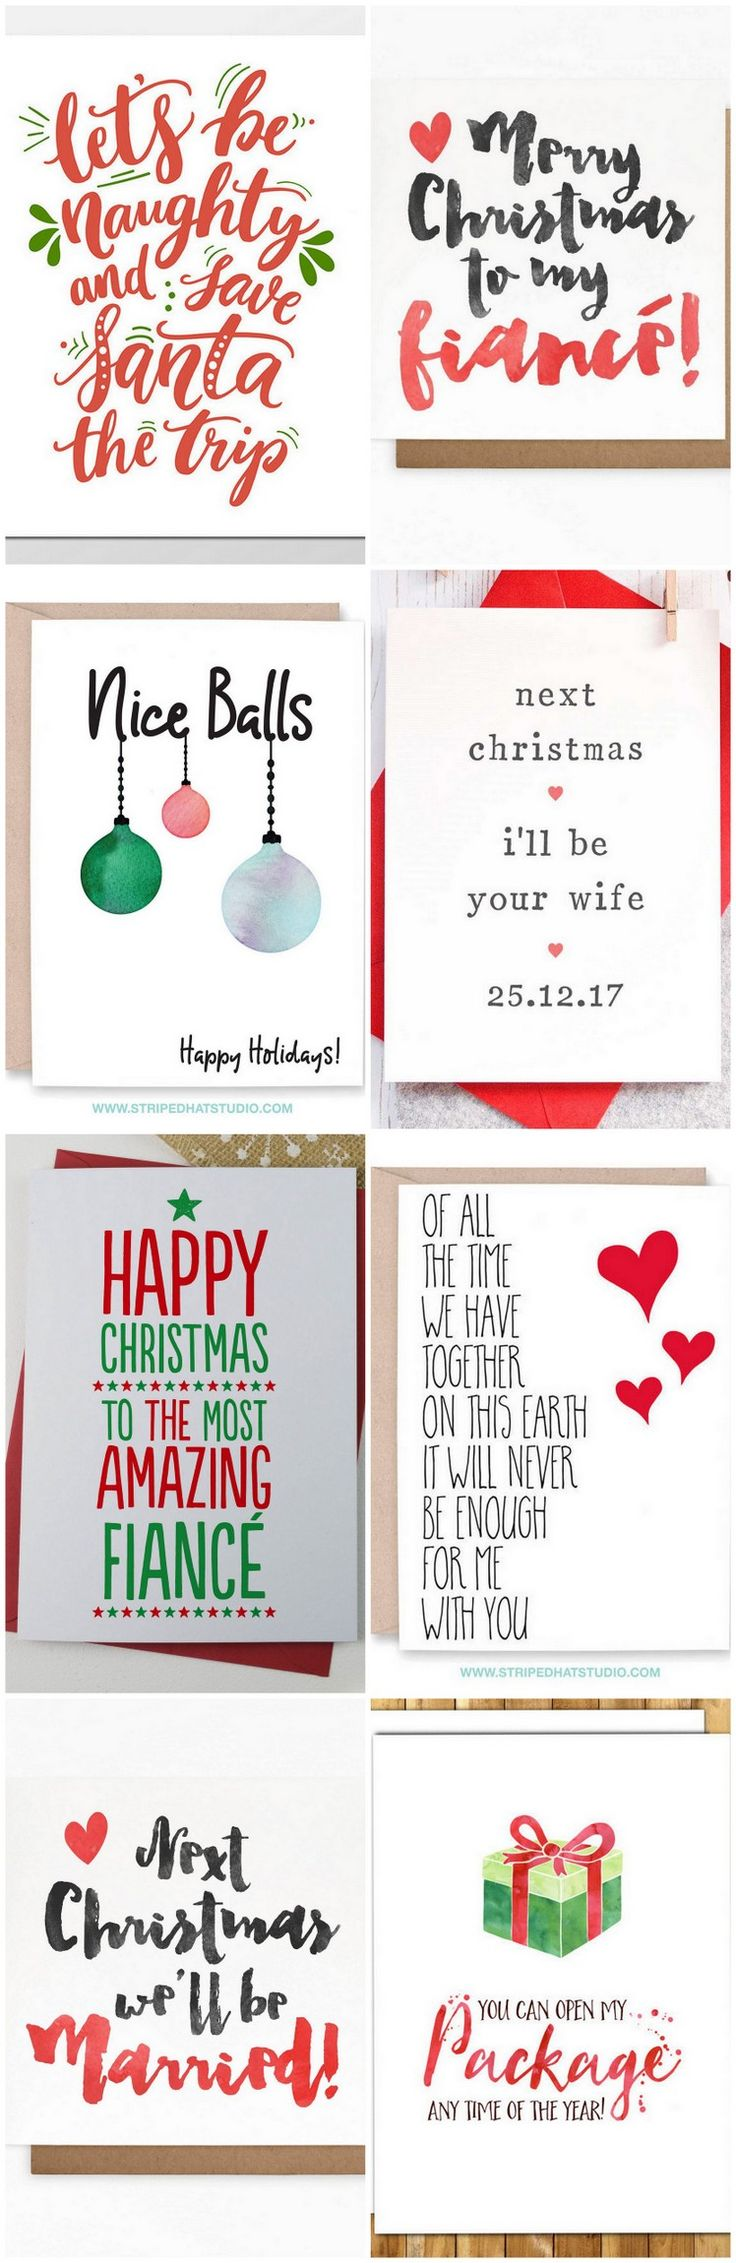 16 Adorable Fiance Christmas Cards for Your Bae! ,  Shannon Hafley